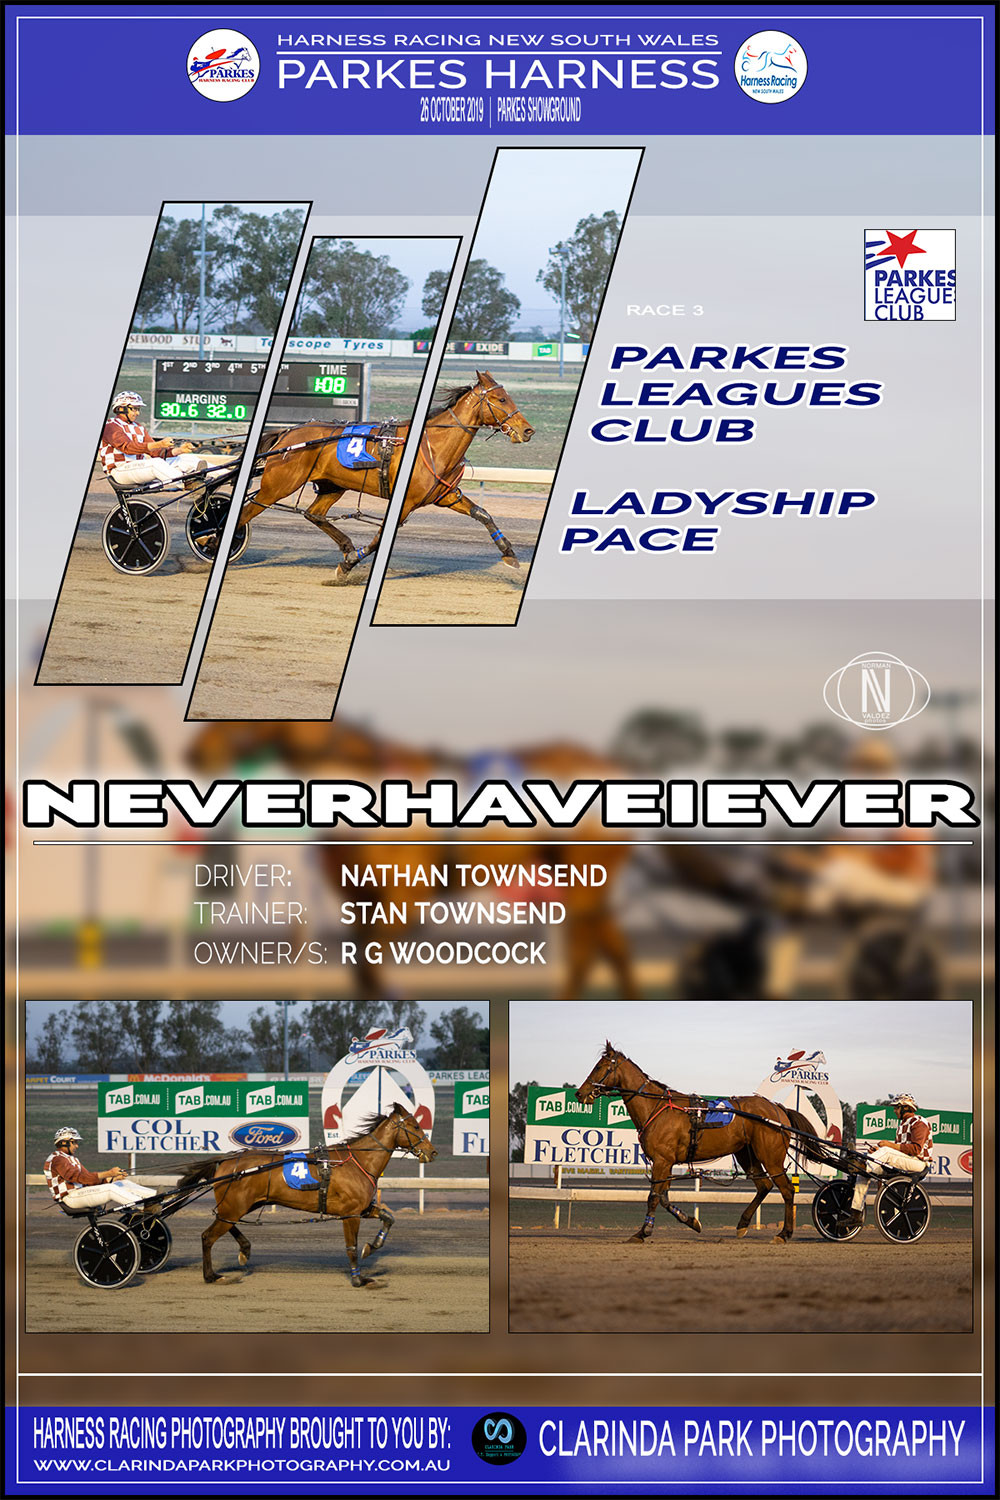 NEVERHAVEIEVER Wins at Parkes Harness Racing Club | Trainer: Stan Townsend | Driver: Nathan Townsend | Owner: Ronald Woodcock